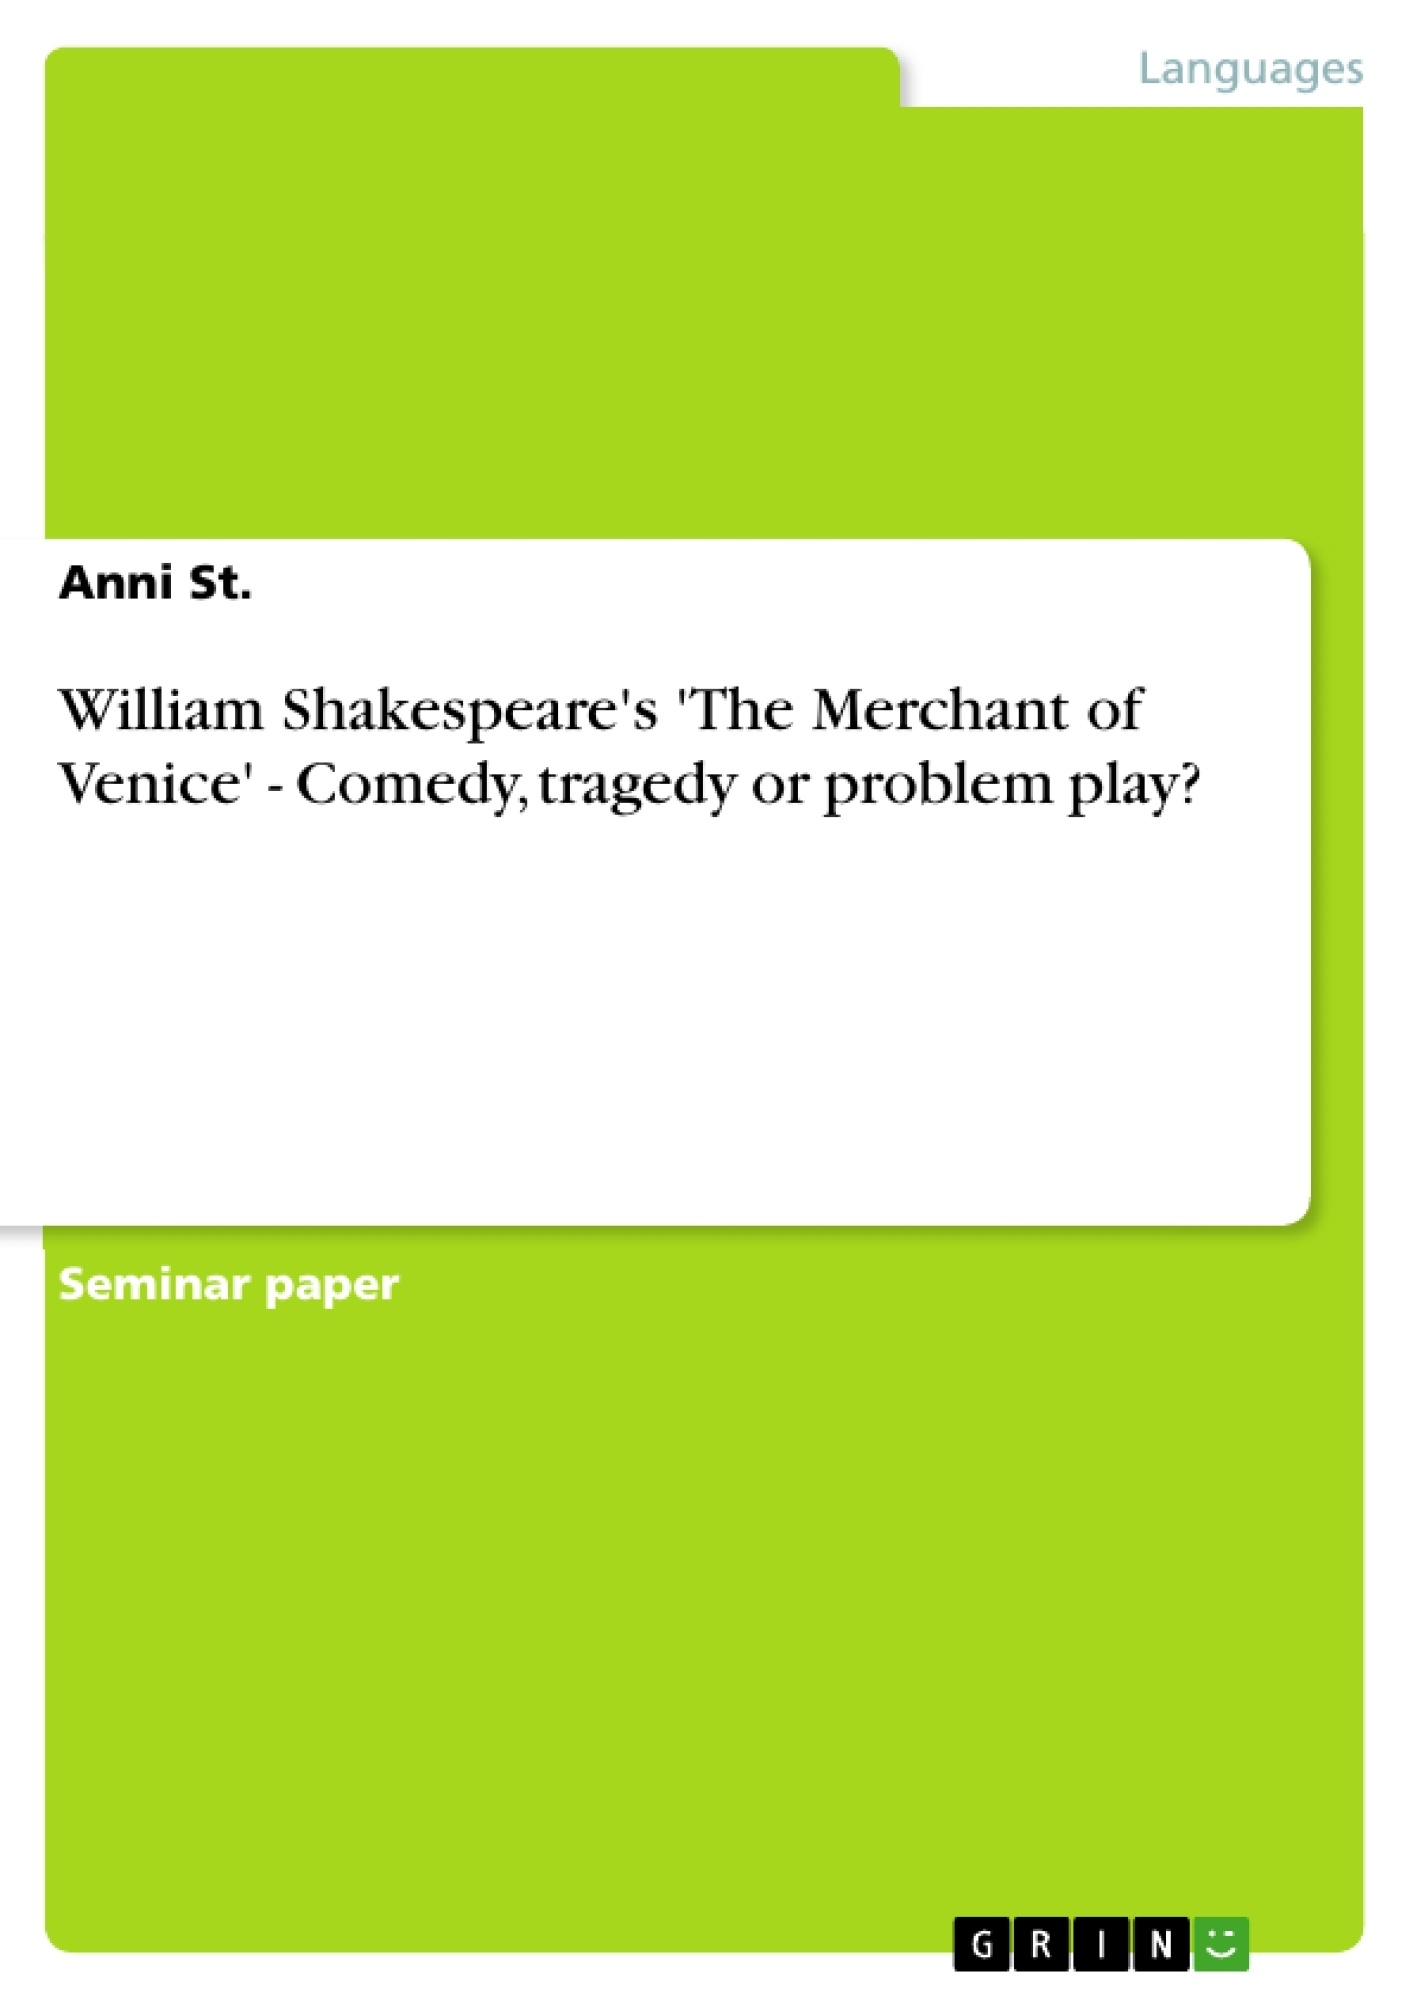 william shakespeare s the merchant of venice comedy tragedy  upload your own papers earn money and win an iphone x